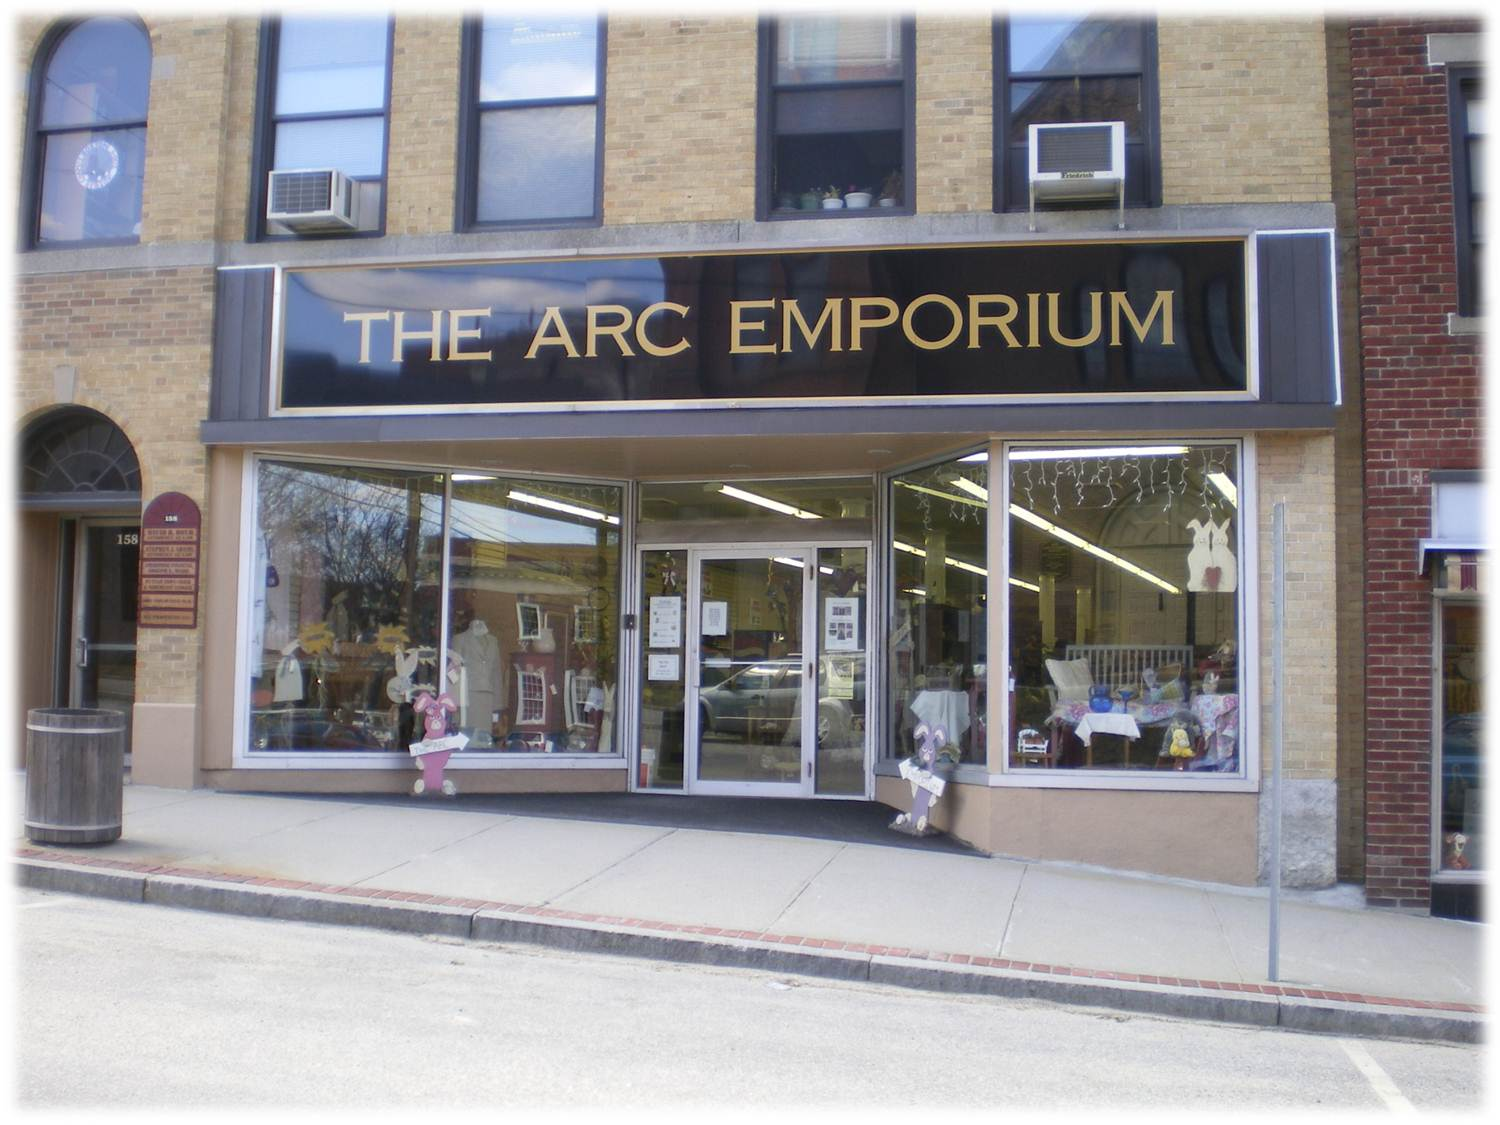 The Arc Emporium Putnam thrift store